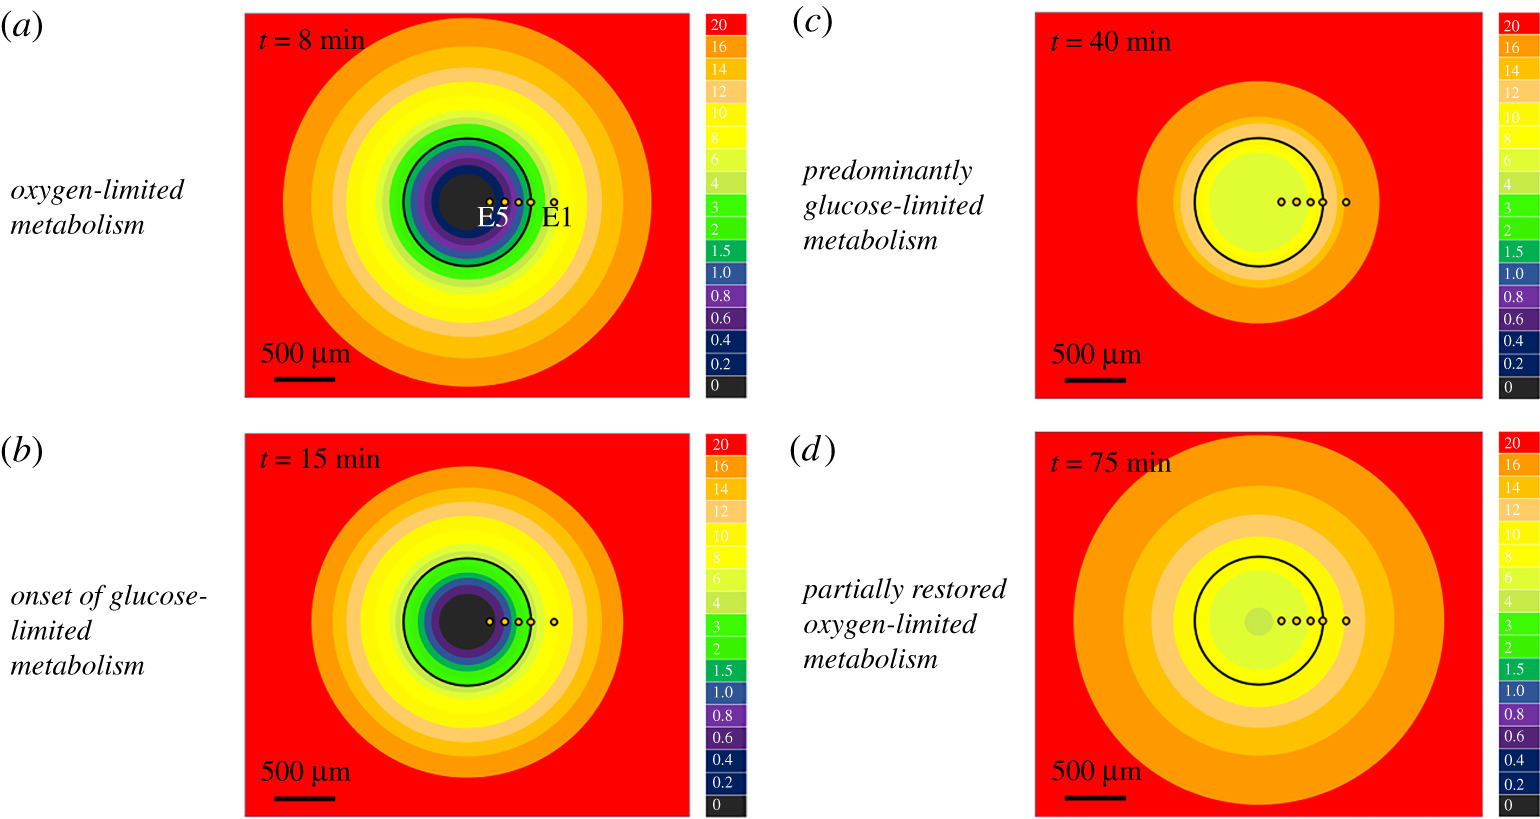 Electrochemical mapping of oxygenation in the three-dimensional